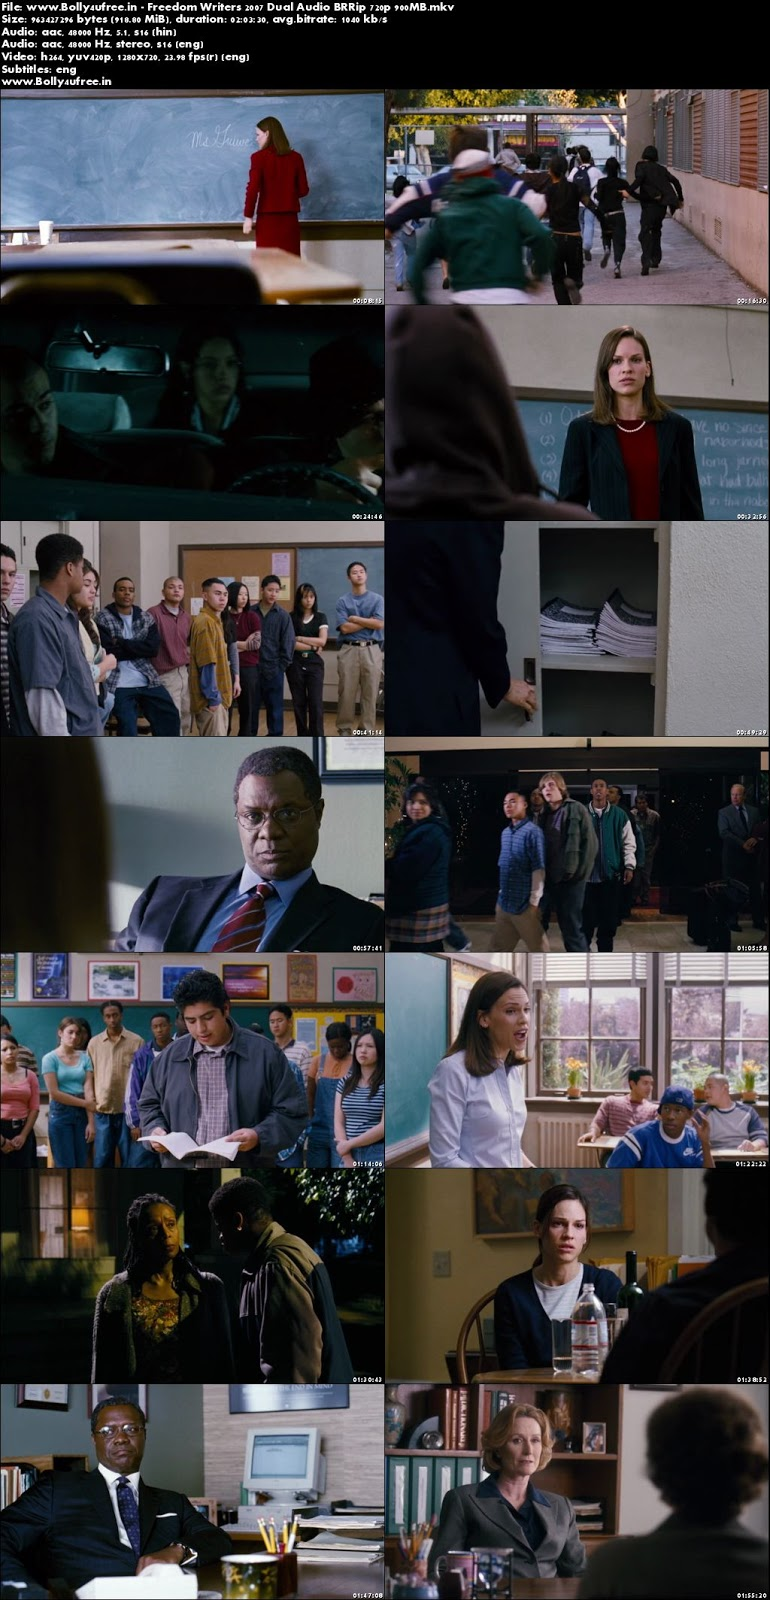 Freedom Writers 2007 Hindi Dual Audio BRRip 720p 900MB